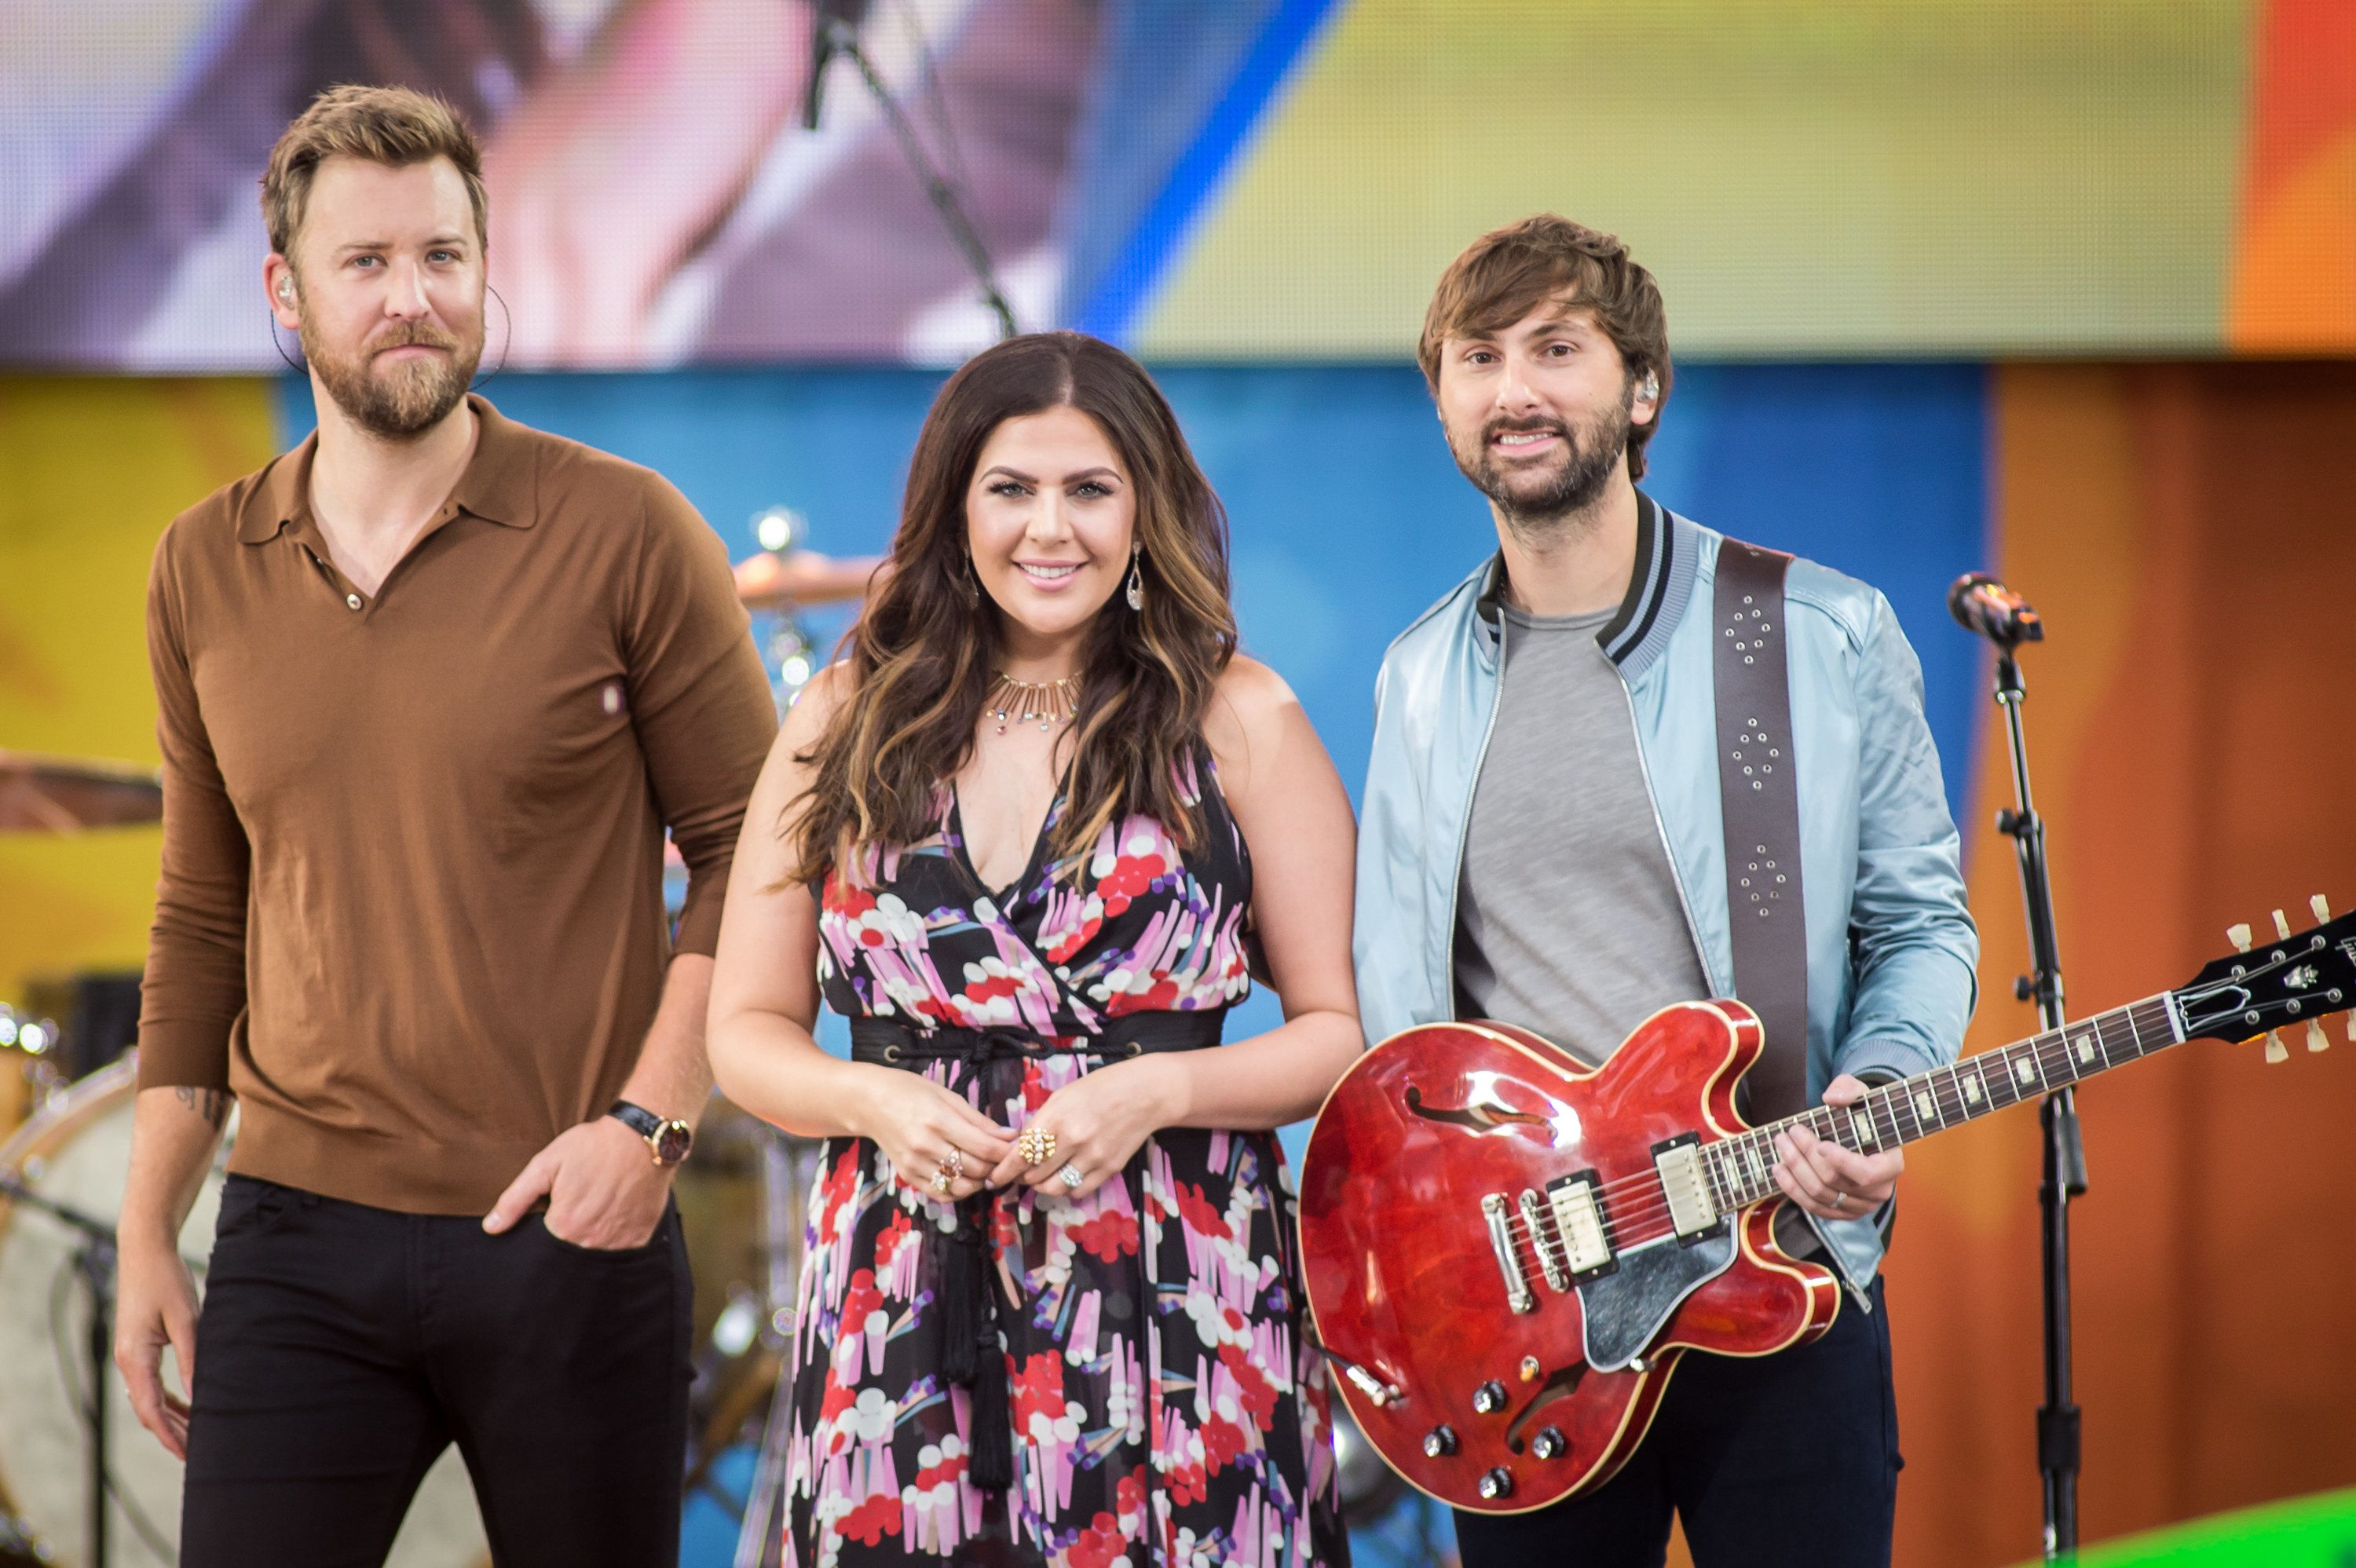 NEW YORK, NY - JULY 14:  (L-R) Charles Kelley, Hillary Scott and Dave Haywood of Lady Antebellum performs on ABC's 'Good Morning America' at Rumsey Playfield on July 14, 2017 in New York City.  (Photo by Mark Sagliocco/FilmMagic)